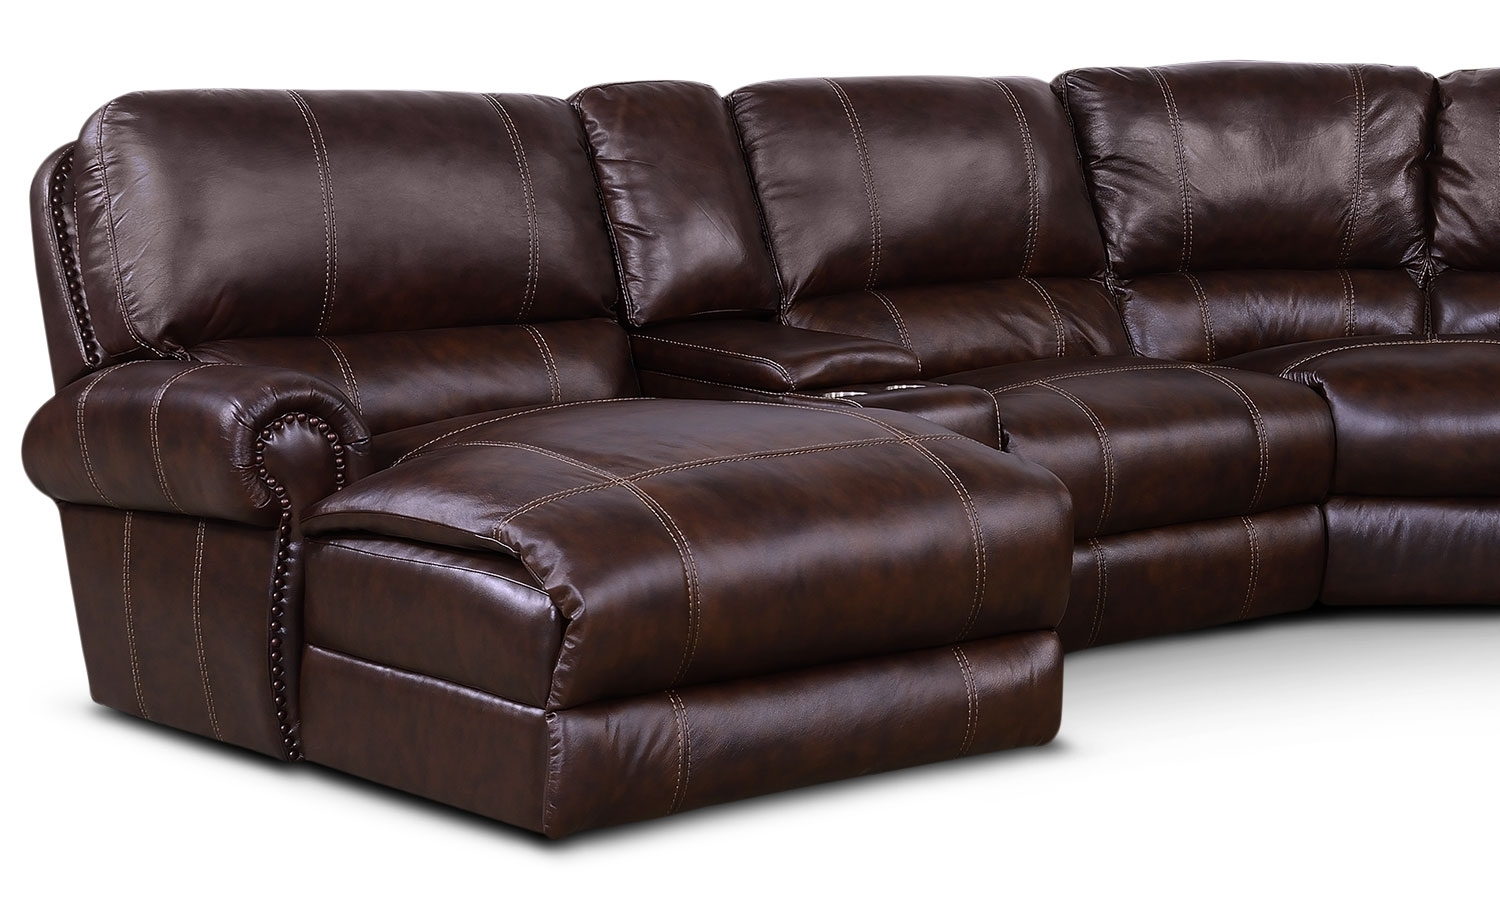 Dartmouth 6-Piece Power Reclining Sectional W/ Left-Facing Chaise in Norfolk Chocolate 6 Piece Sectionals (Image 9 of 30)